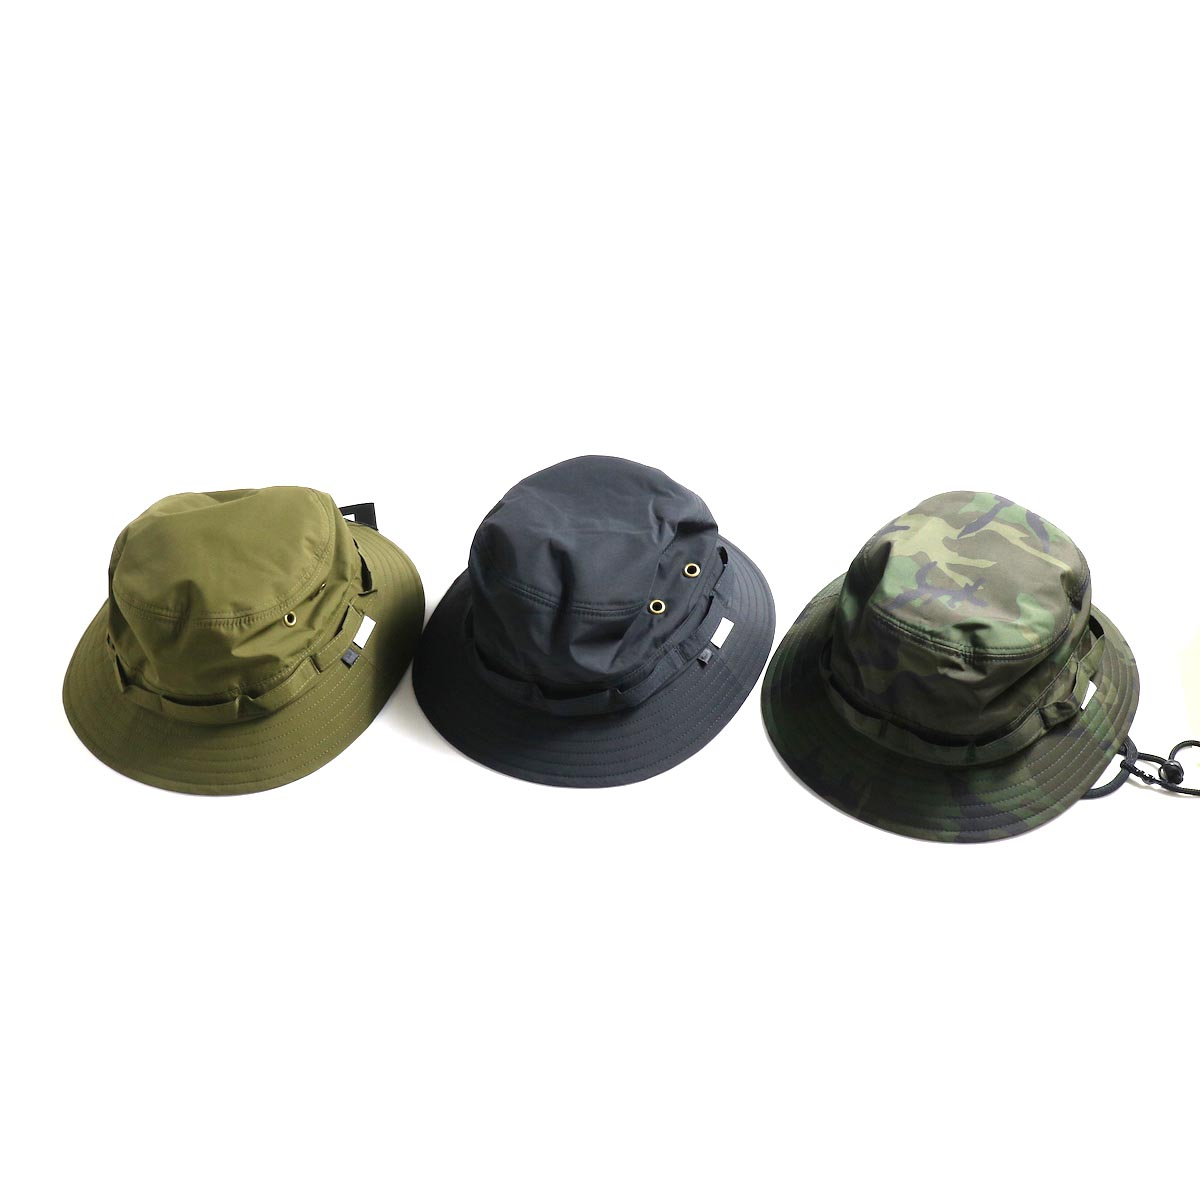 DAIWA PIER39 / GORE-TEX INFINIUM Tech Jungle hat